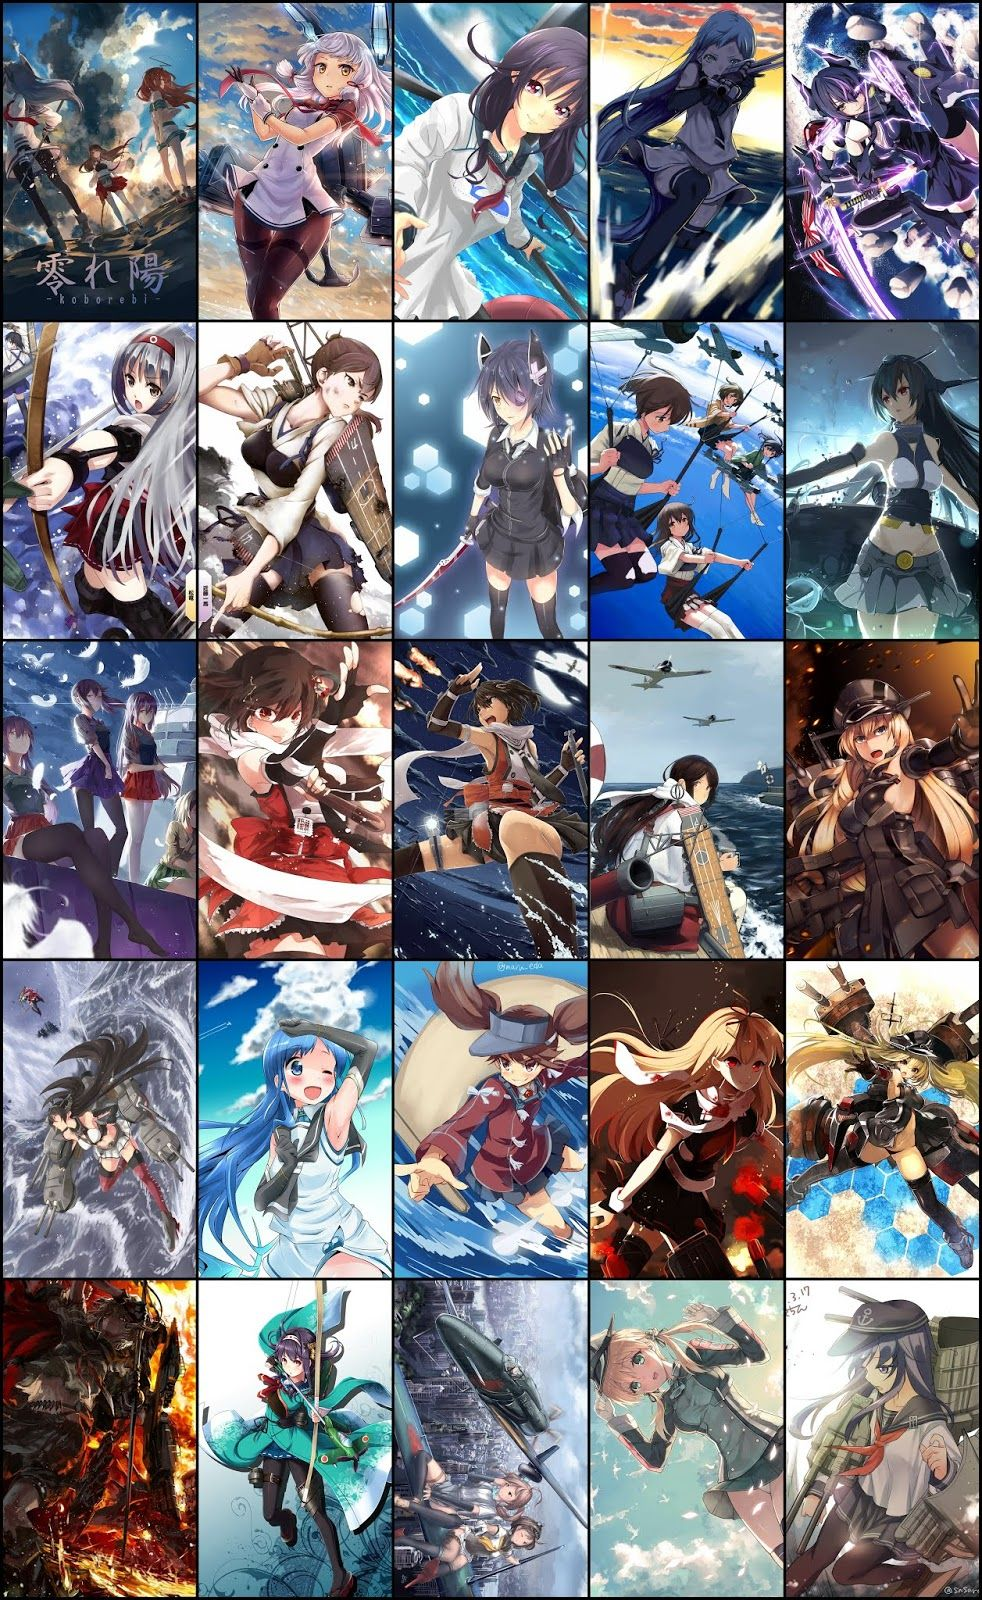 Wallpaper Pack Kantai Collection For Mobile Android Phone Part 01 Anime Art Beautiful Cool Anime Wallpapers Kantai Collection